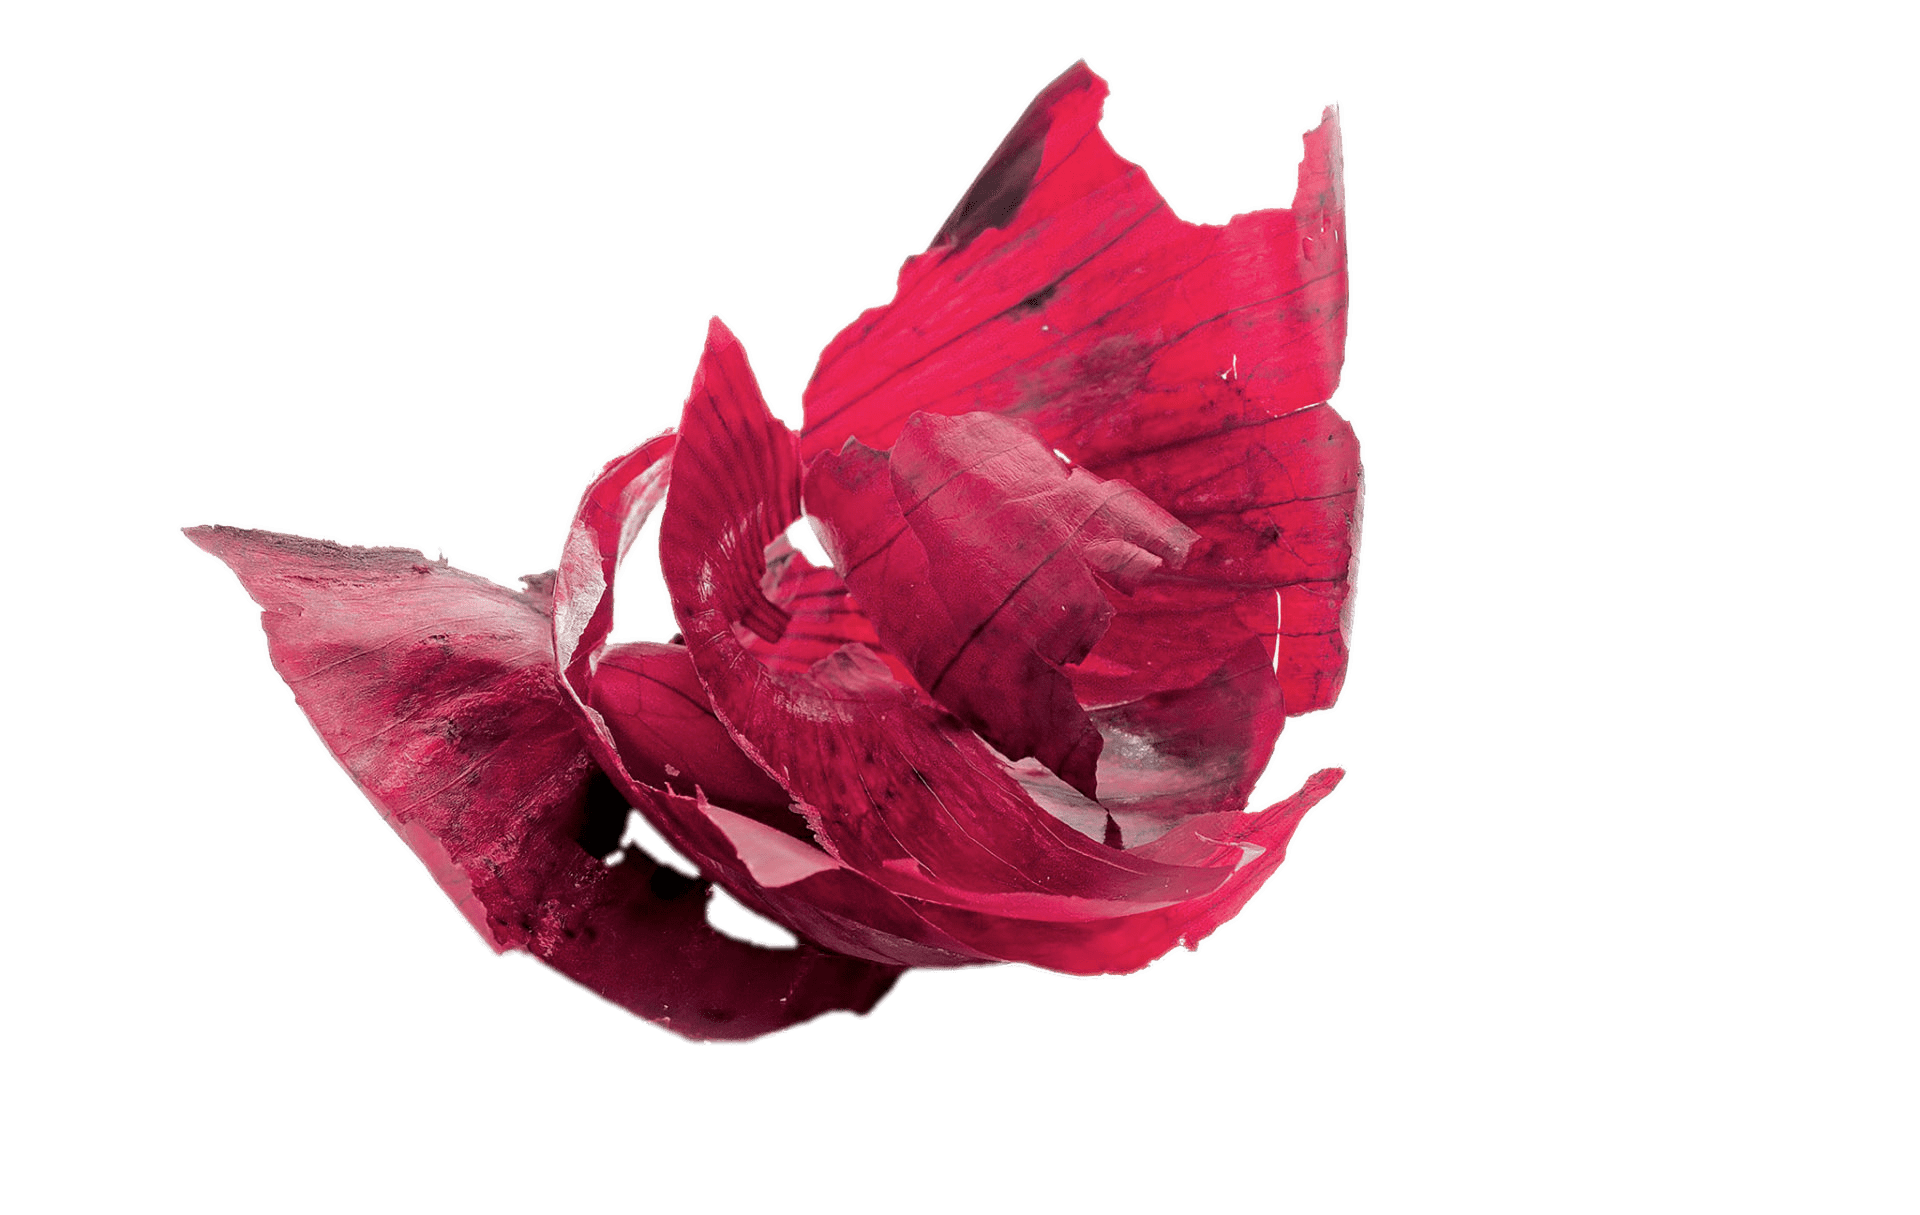 Red peels transparent png. Onion clipart onion peel